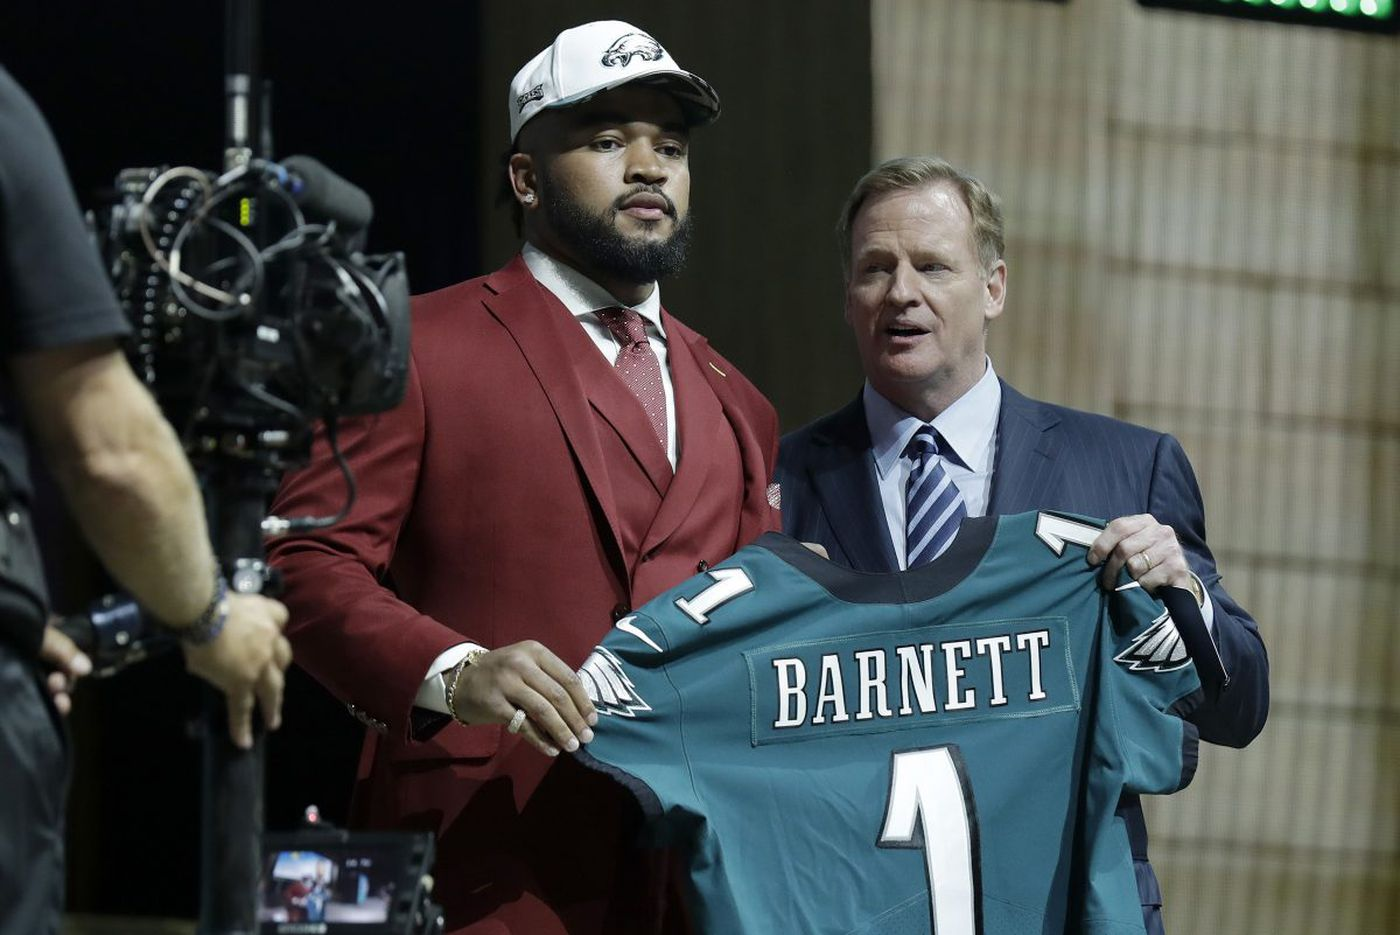 NFL draft 2018: TV channels, schedule, draft order, Eagles projections and a parrot